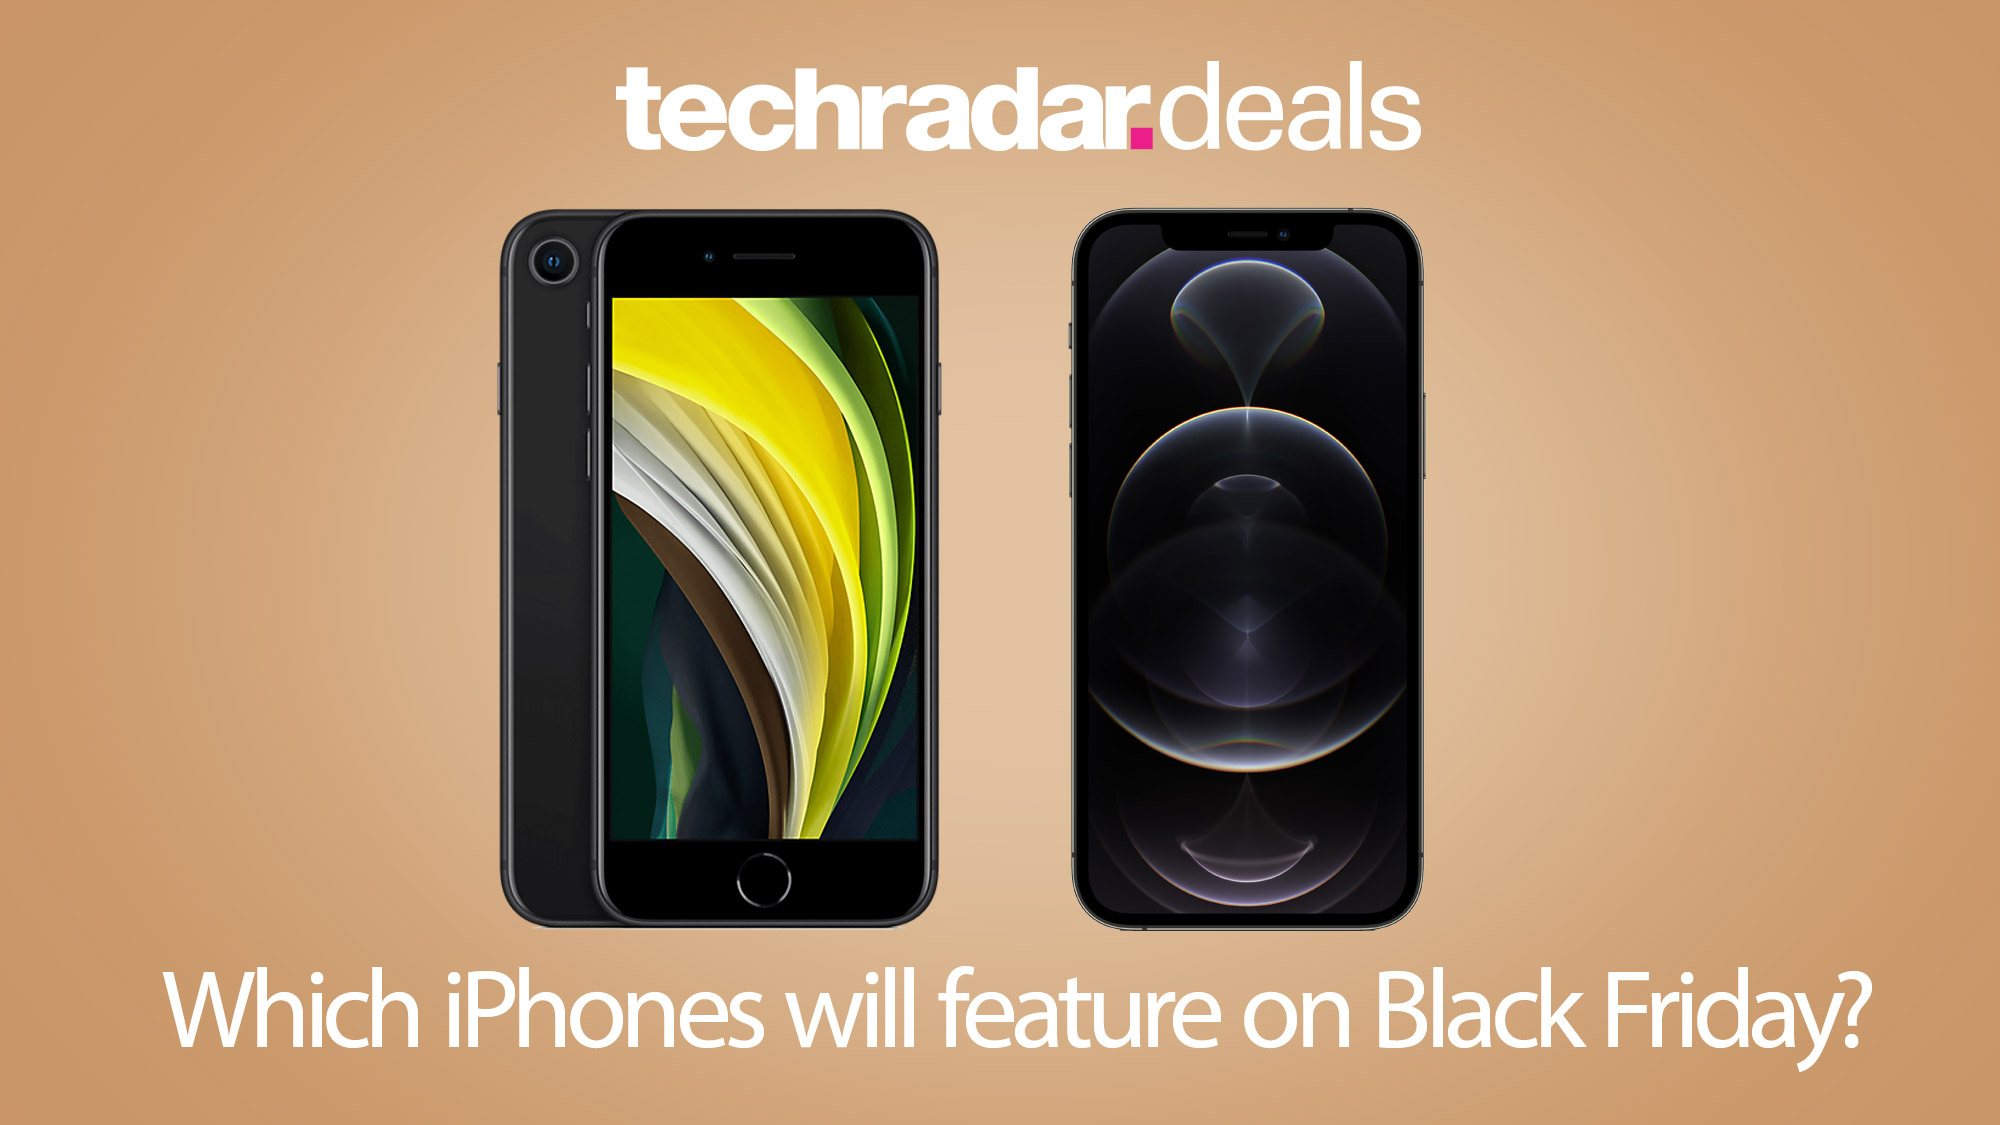 These Are The Iphone Deals We Expect To See Over Black Friday Techradar